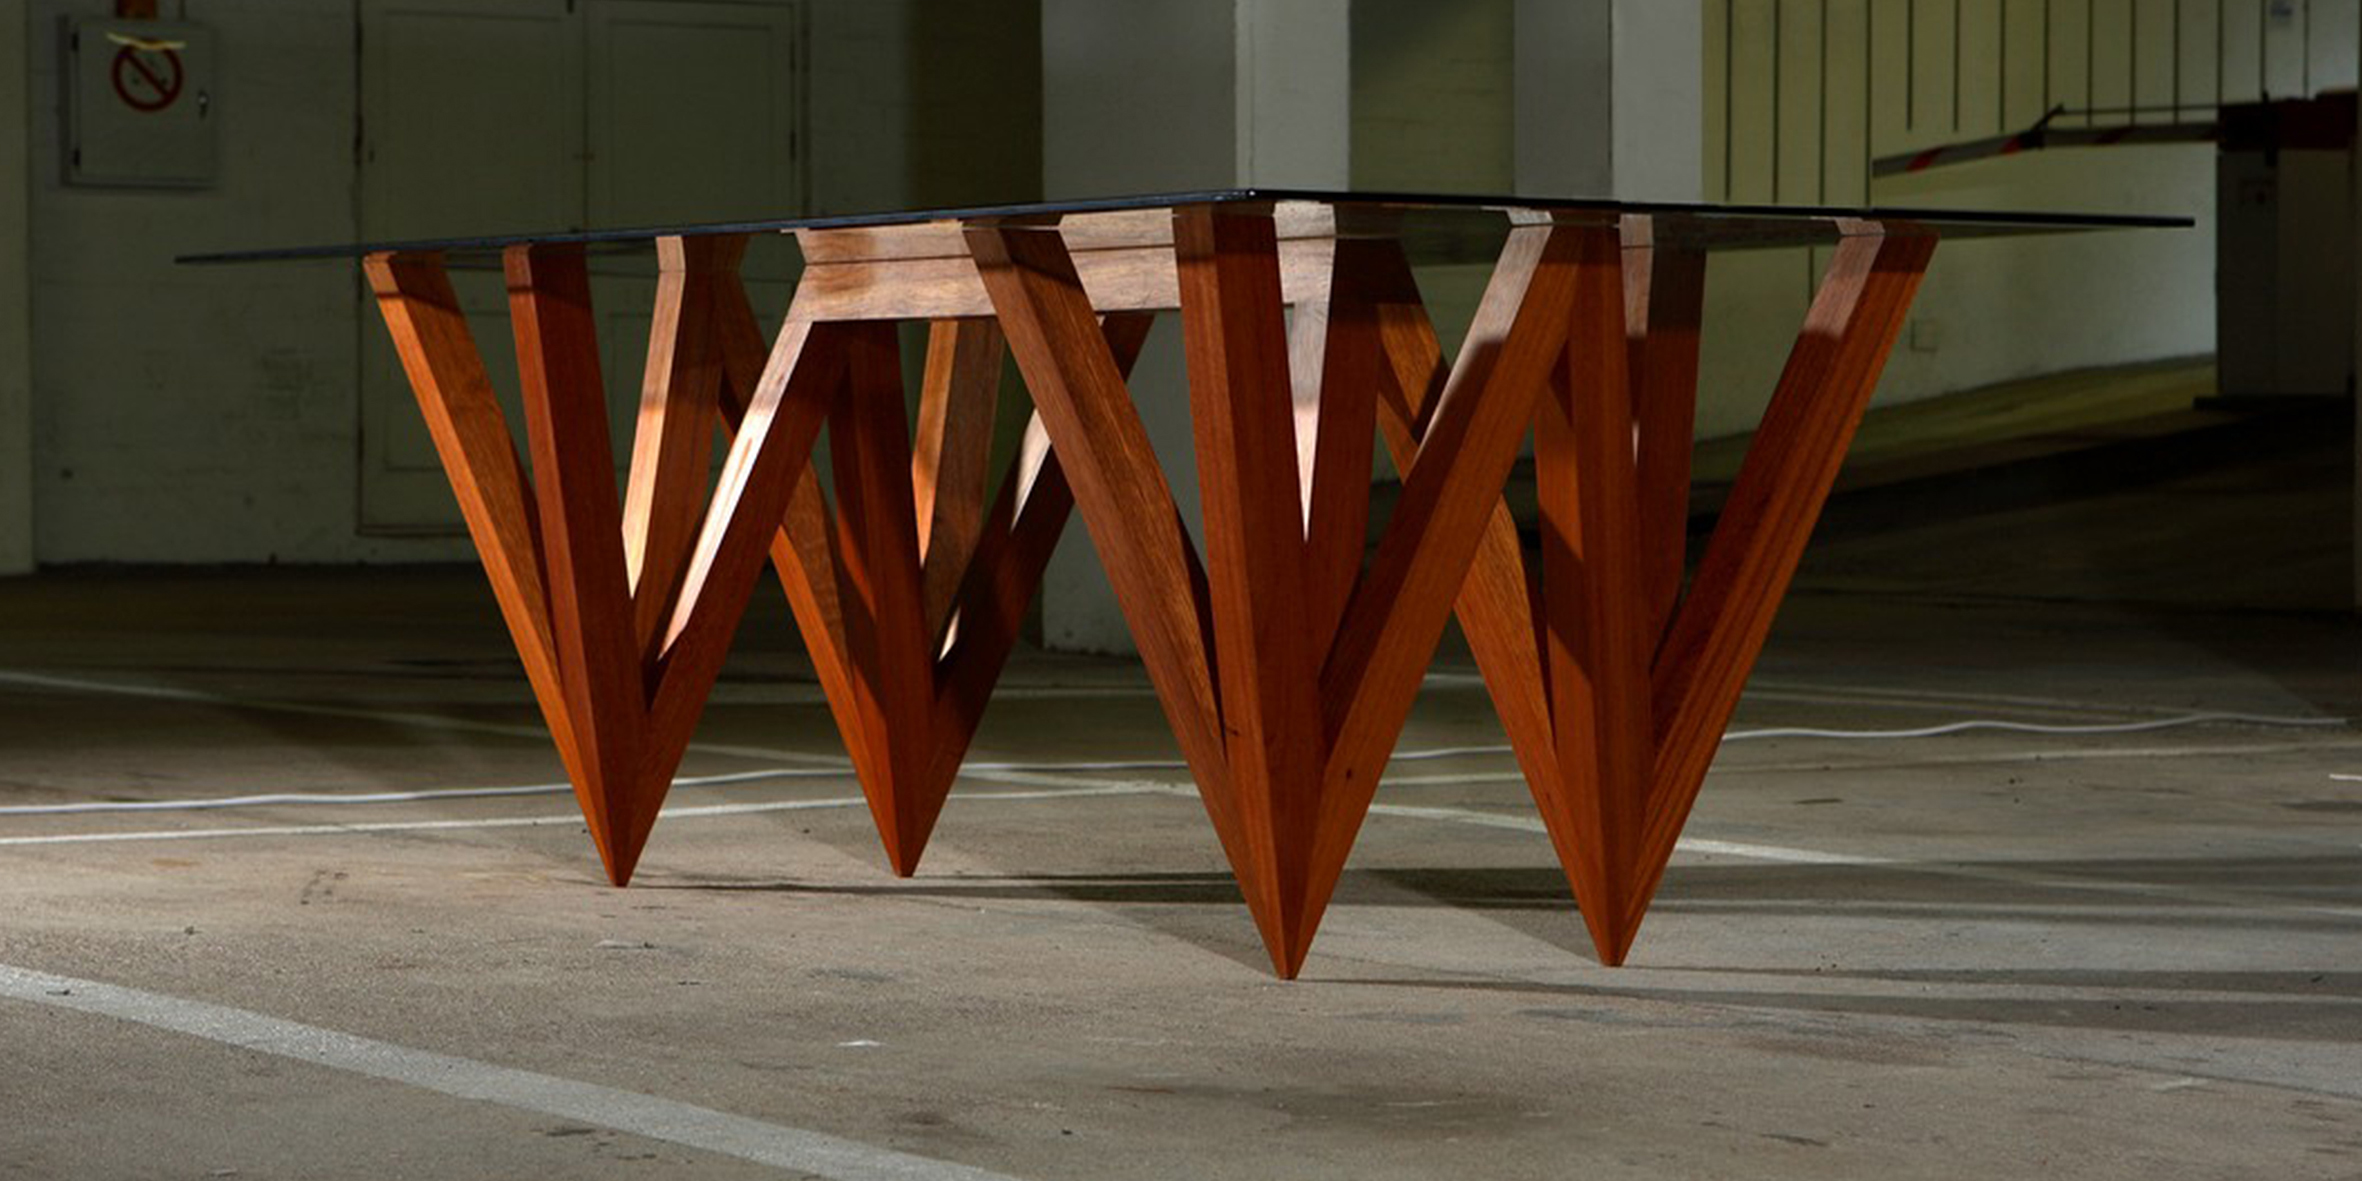 w table, 3000 l x 1250 w x 730 h, mahogany